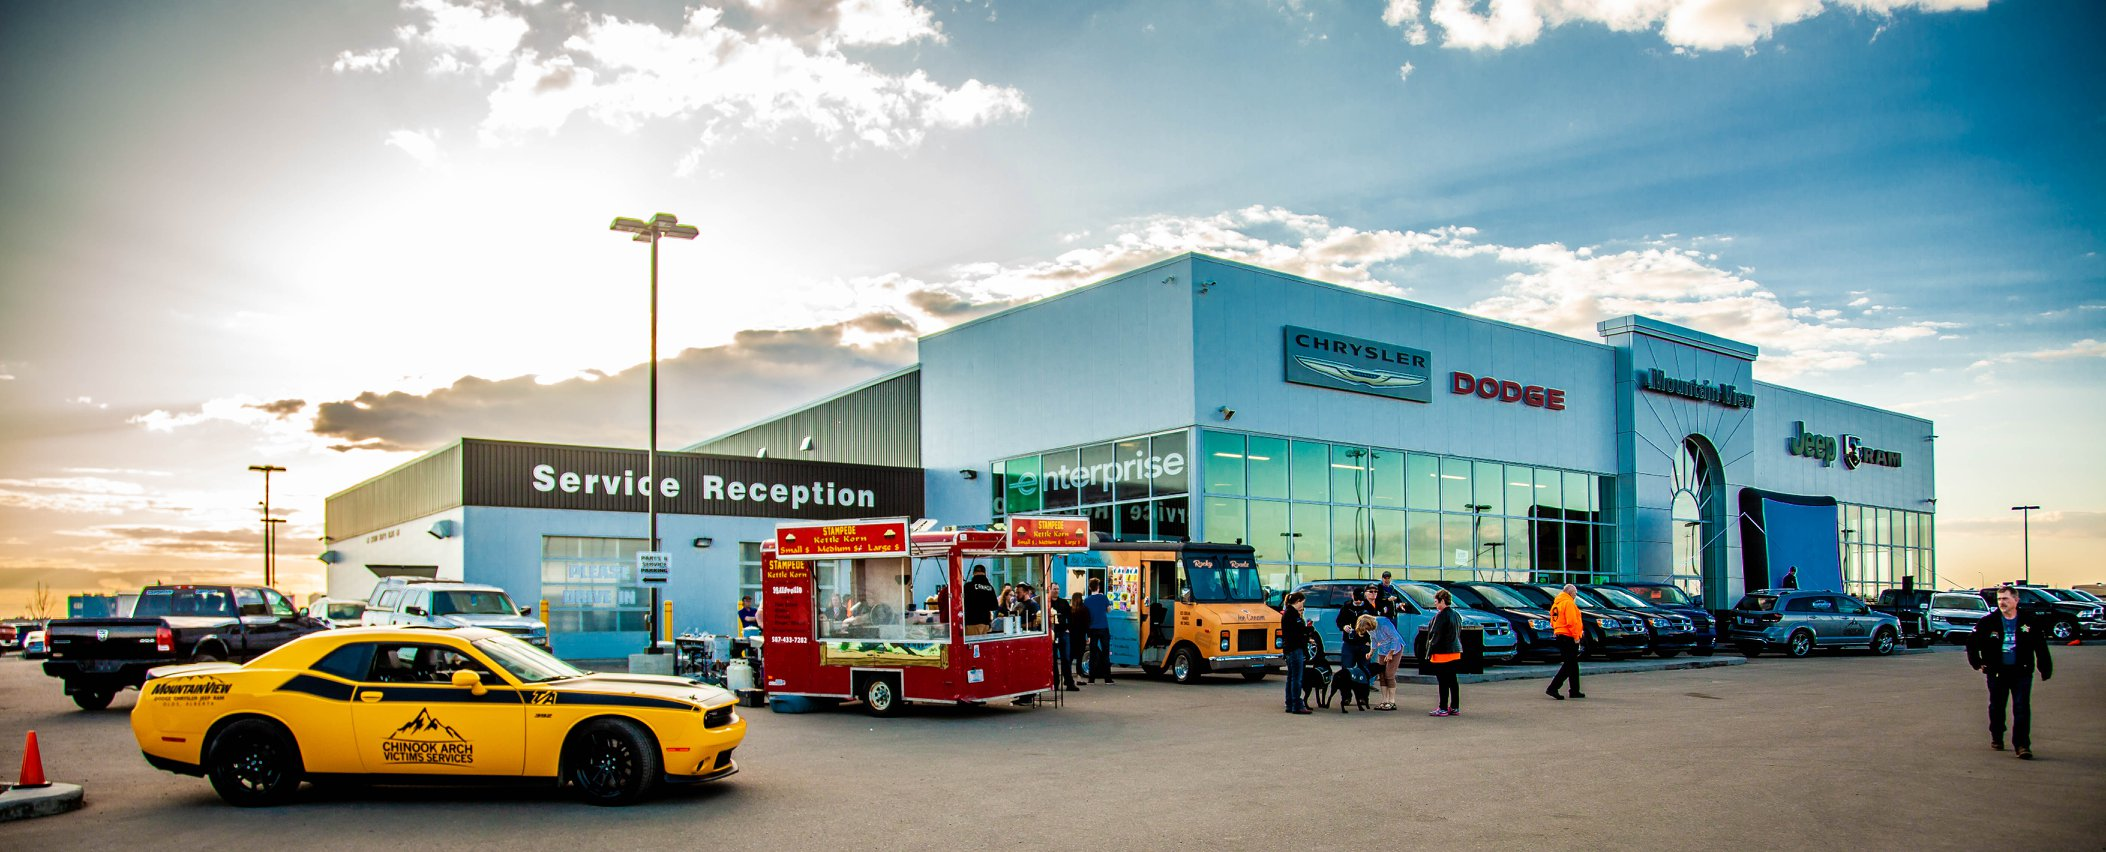 Mountain View Chrysler Dodge Jeep Ram Has Grown To Become A Premier  Chrysler Dodge Jeep Ram Auto Dealer In The Olds, Red Deer, Calgary And  Southern Alberta ...